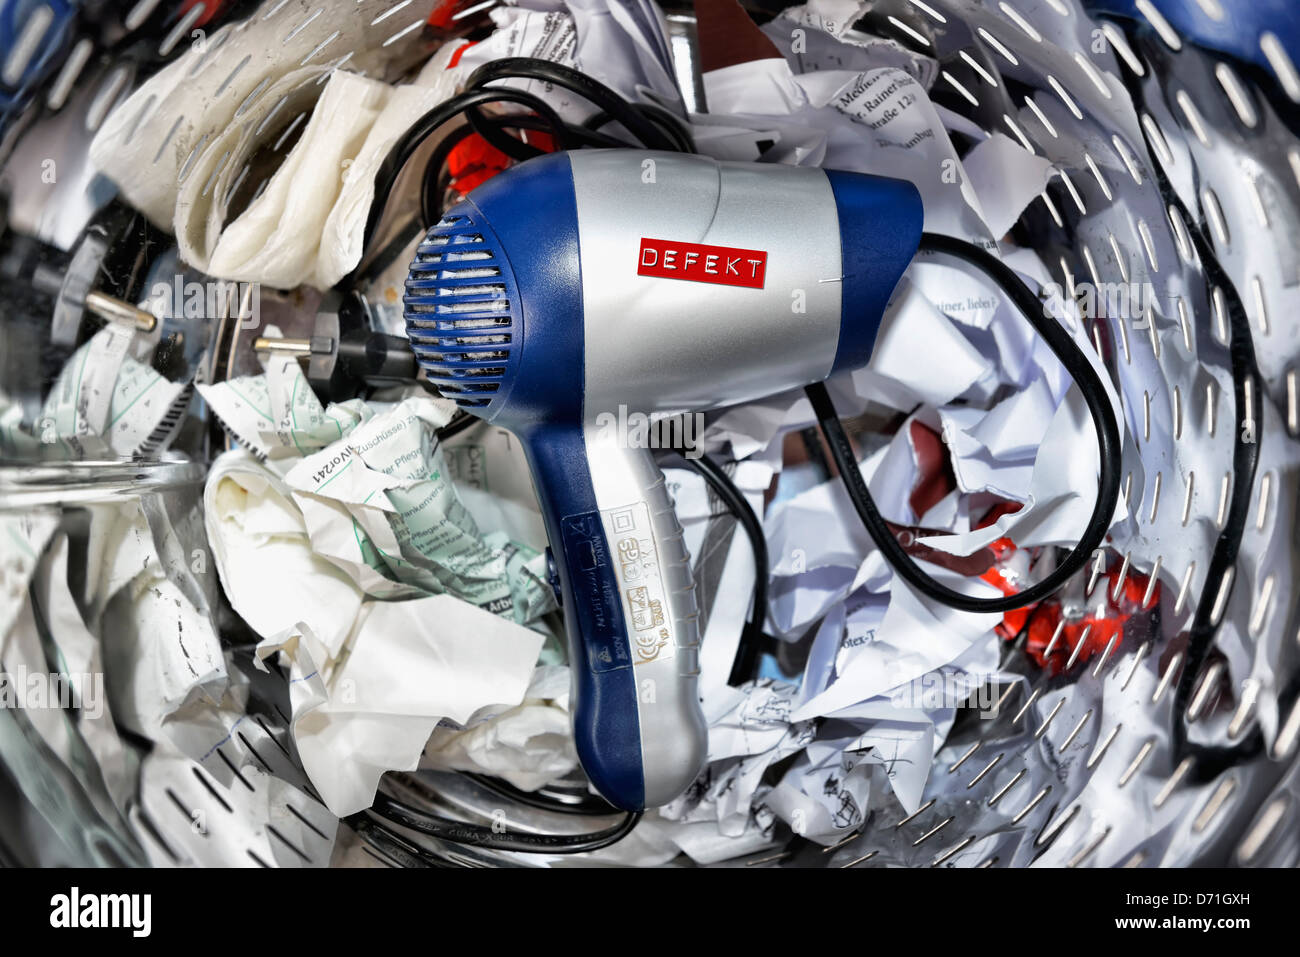 Defective hairdrier in the wastepaper basket, symbolic photo wearing parts in electrical appliances - Stock Image